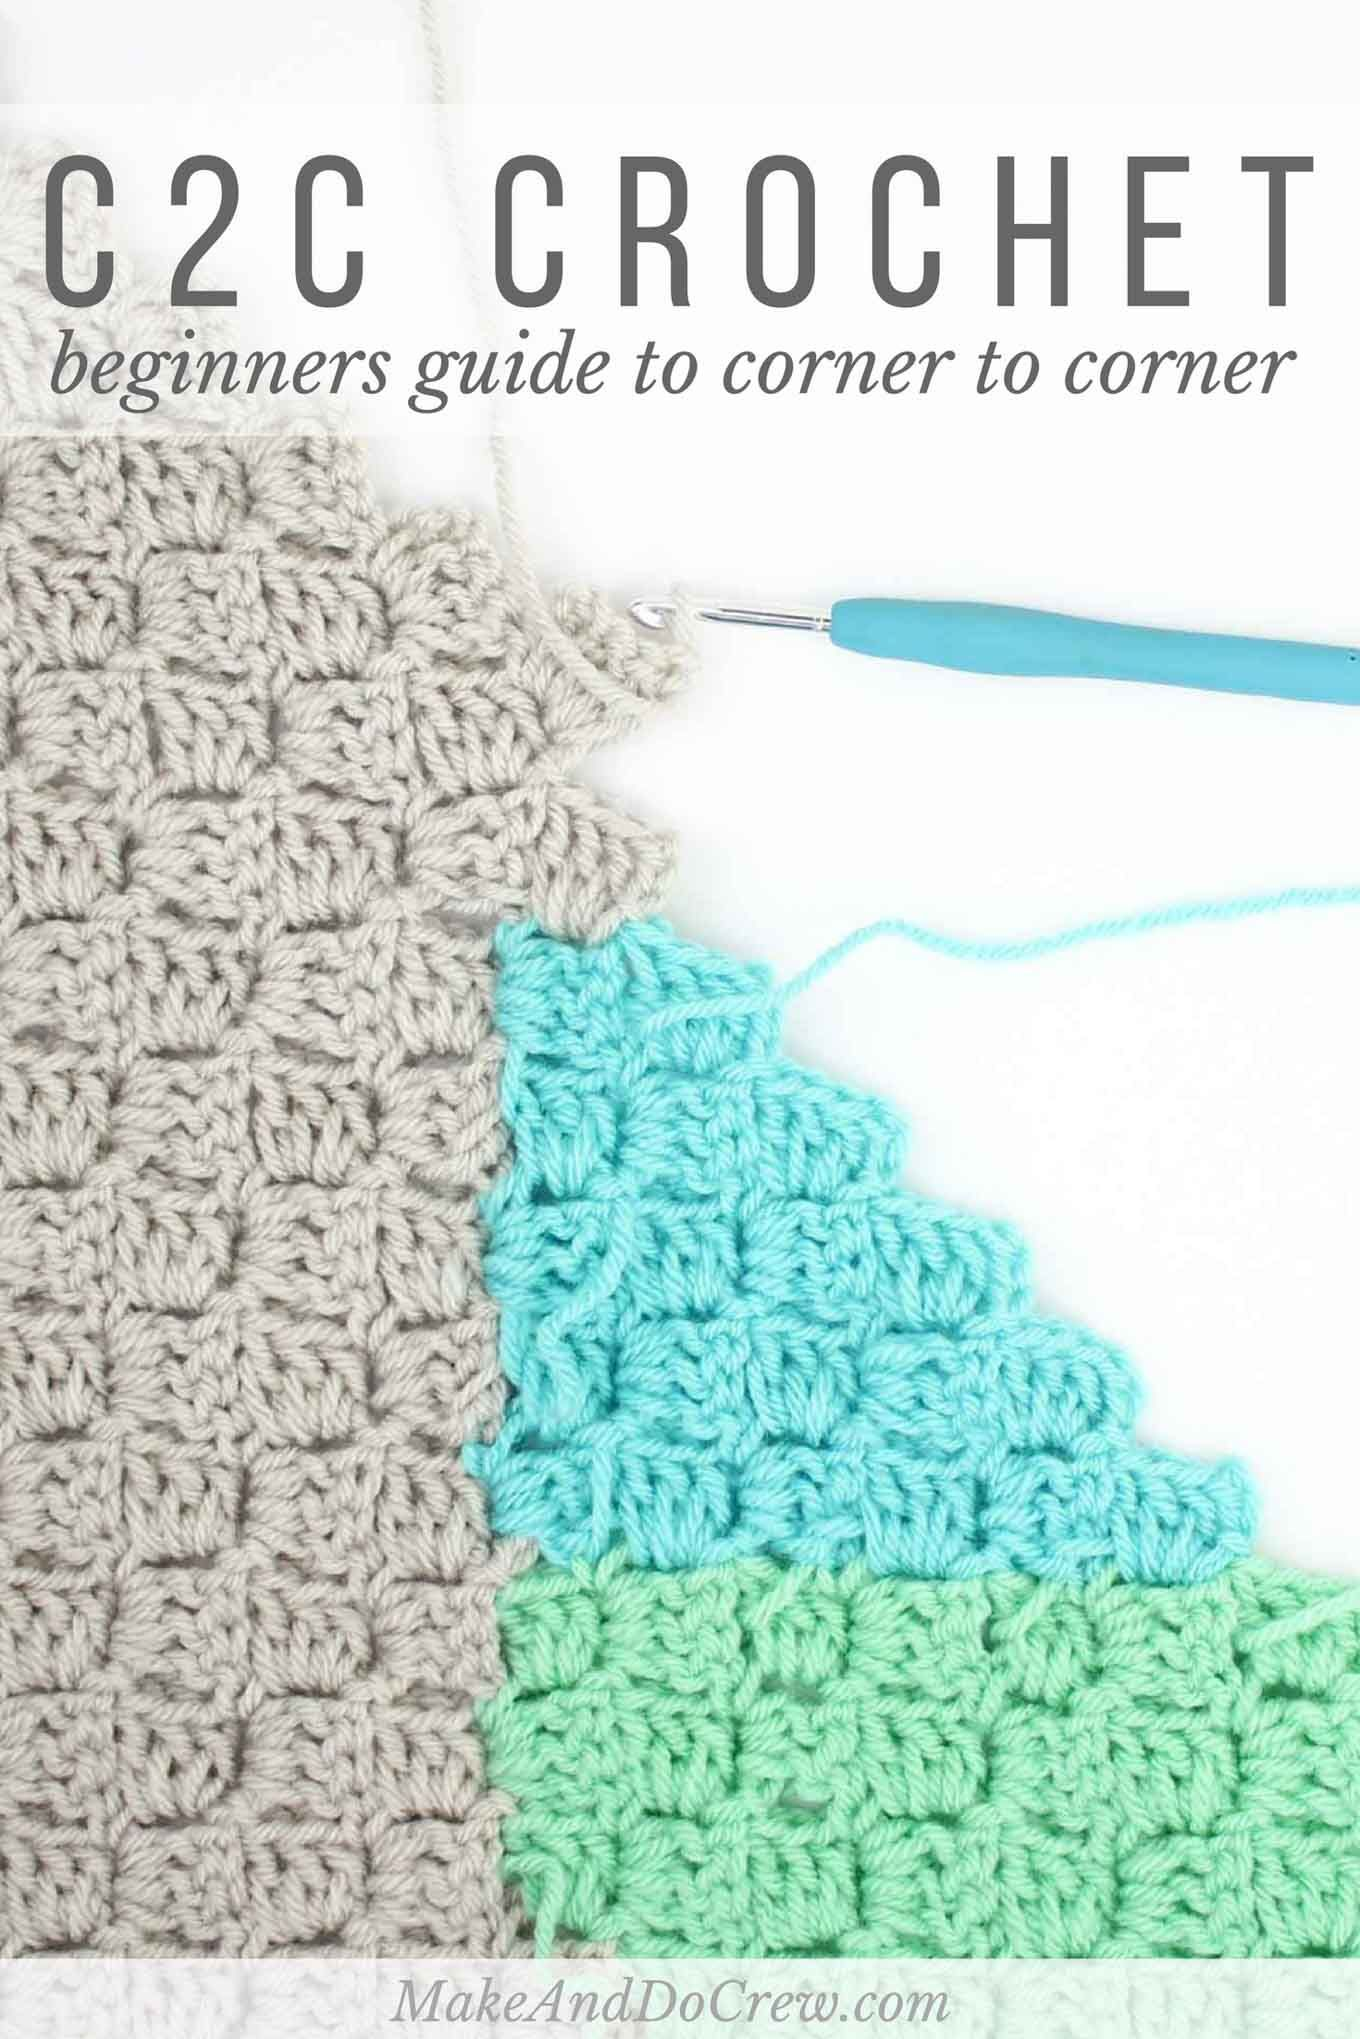 How to corner to corner crochet c2c for beginners crochet how to corner to corner crochet c2c for beginners ccuart Images